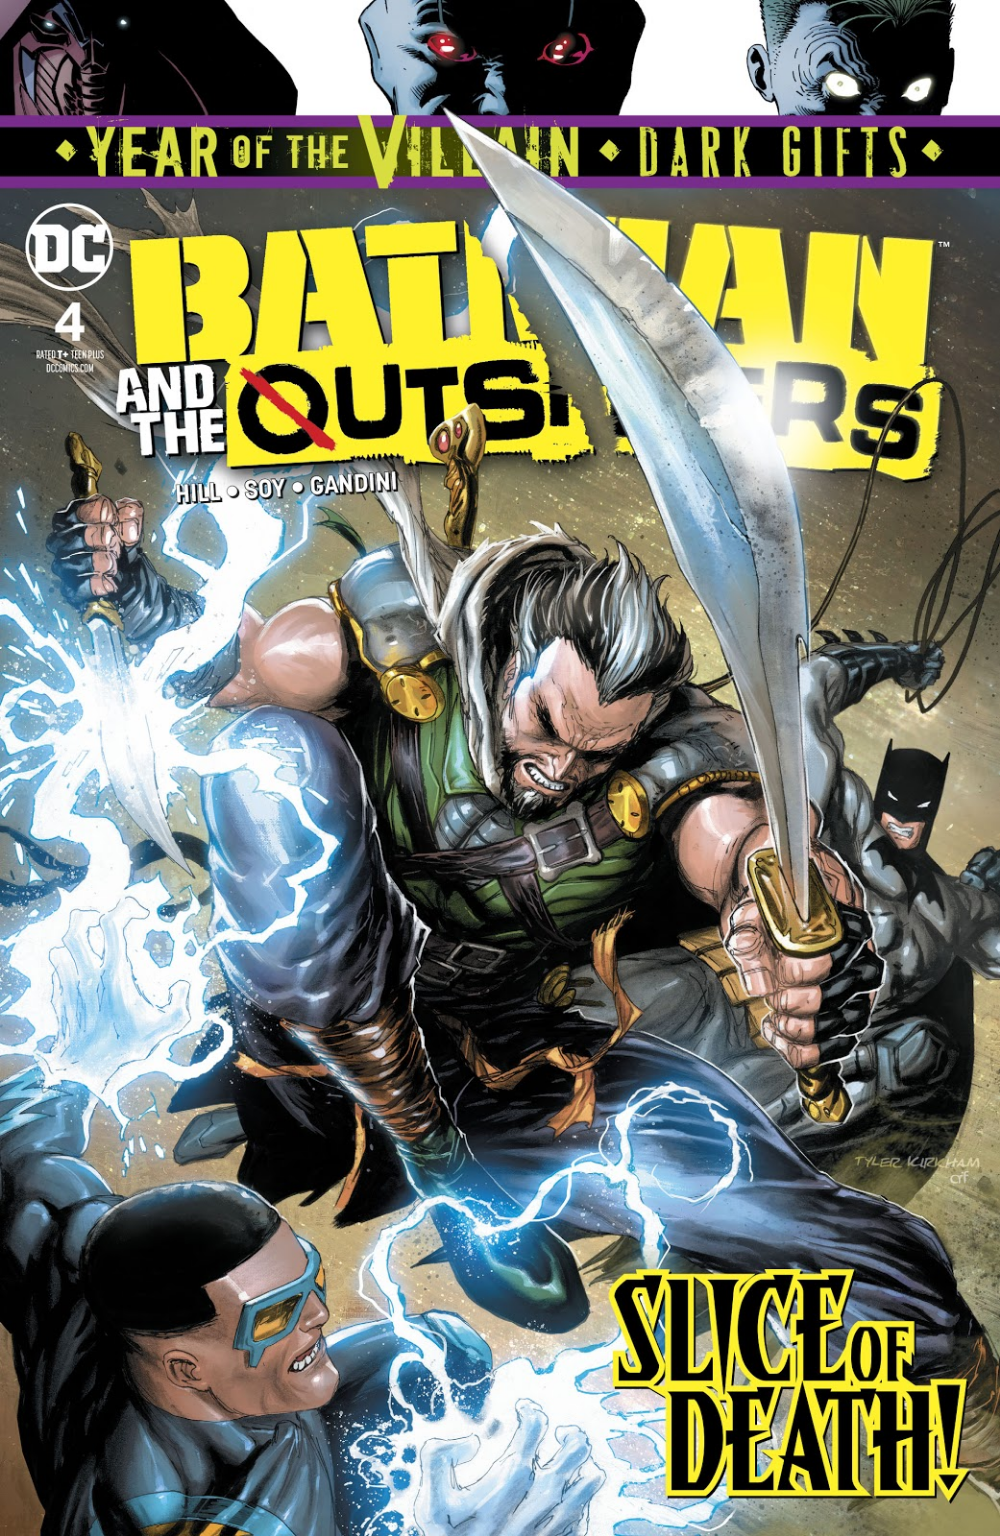 Batman The Outsiders Issue 4 Read Batman The Outsiders Issue 4 Comic Online In High Quality Comics Dc Comics The Outsiders